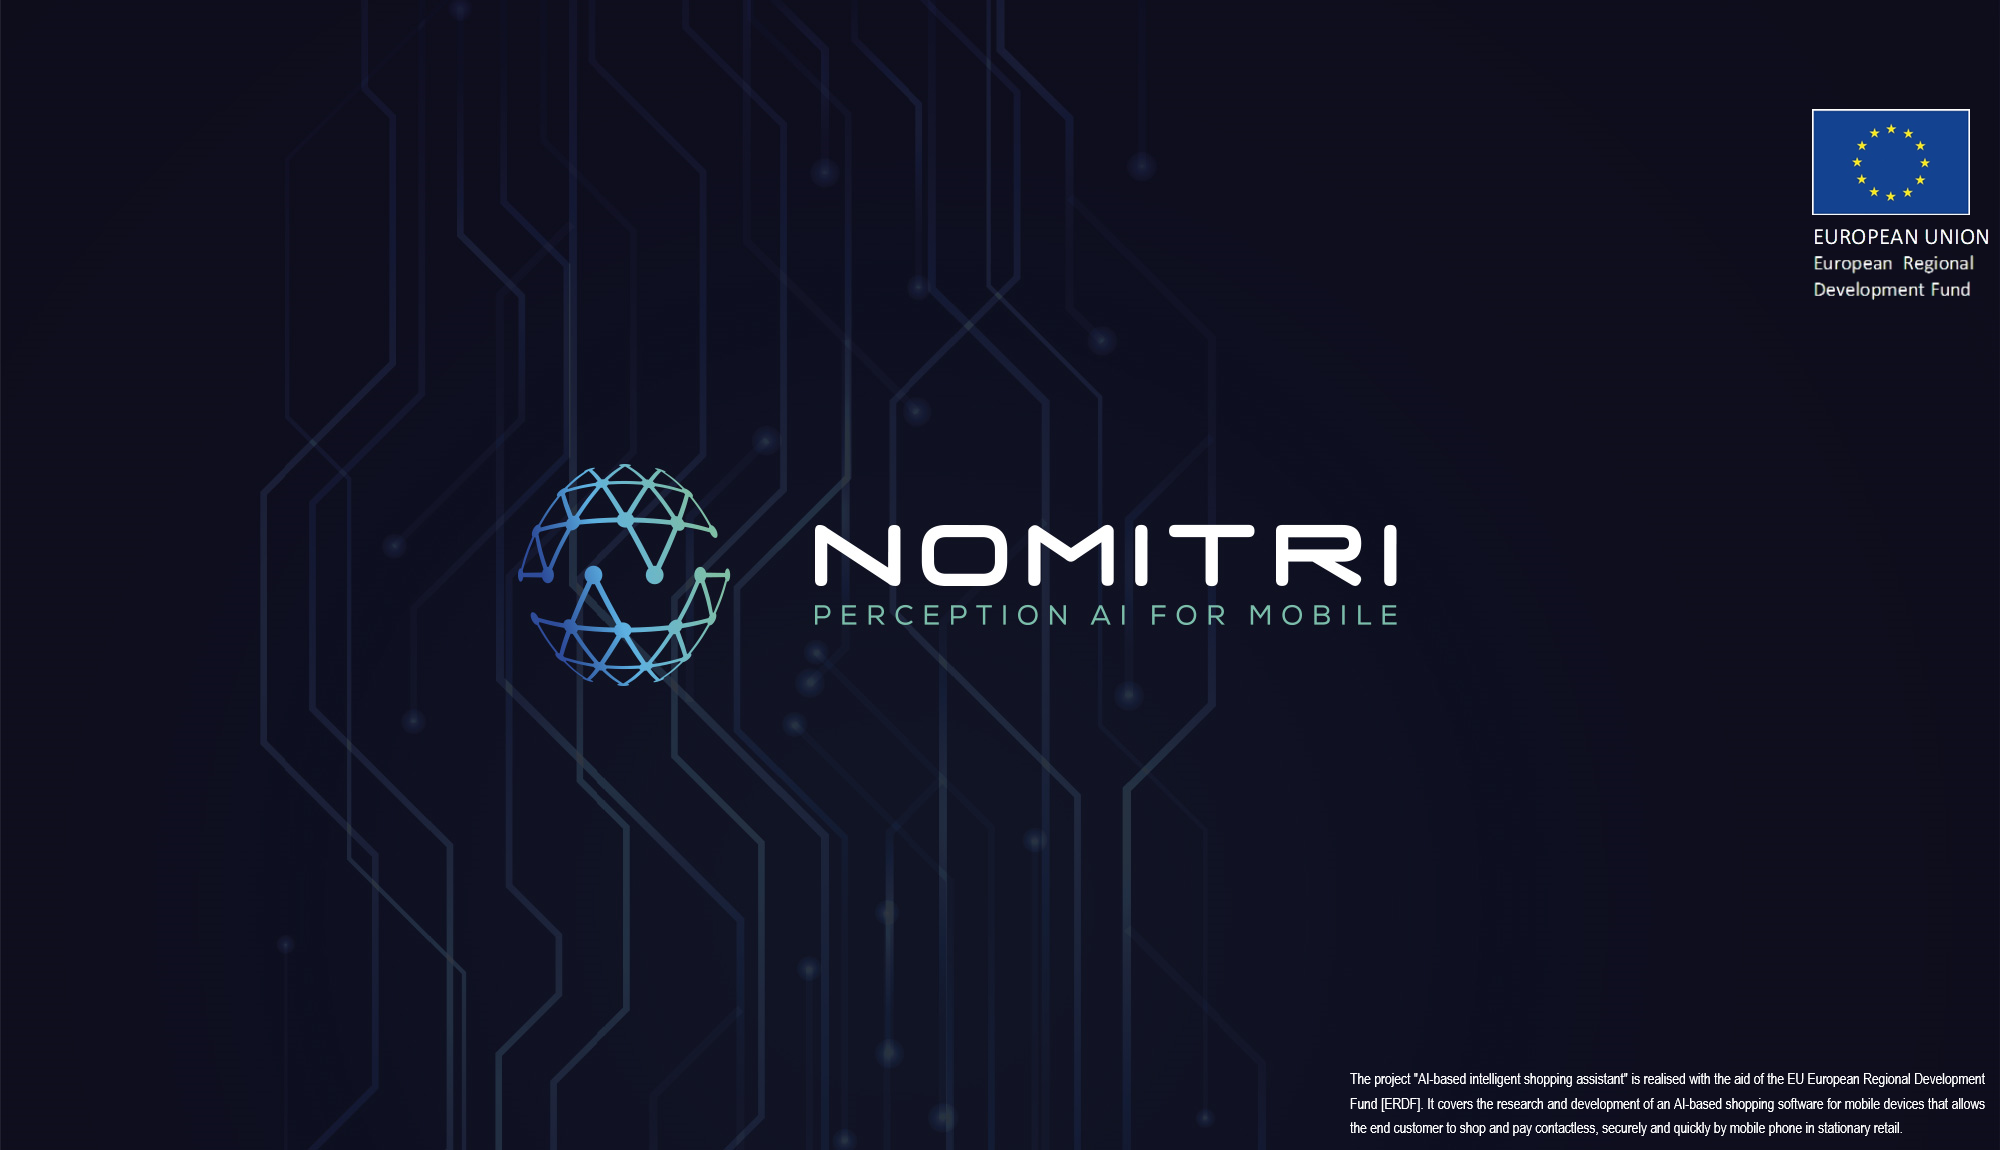 Nomitri-Background_inc Logo_English & Project_Descr_v3